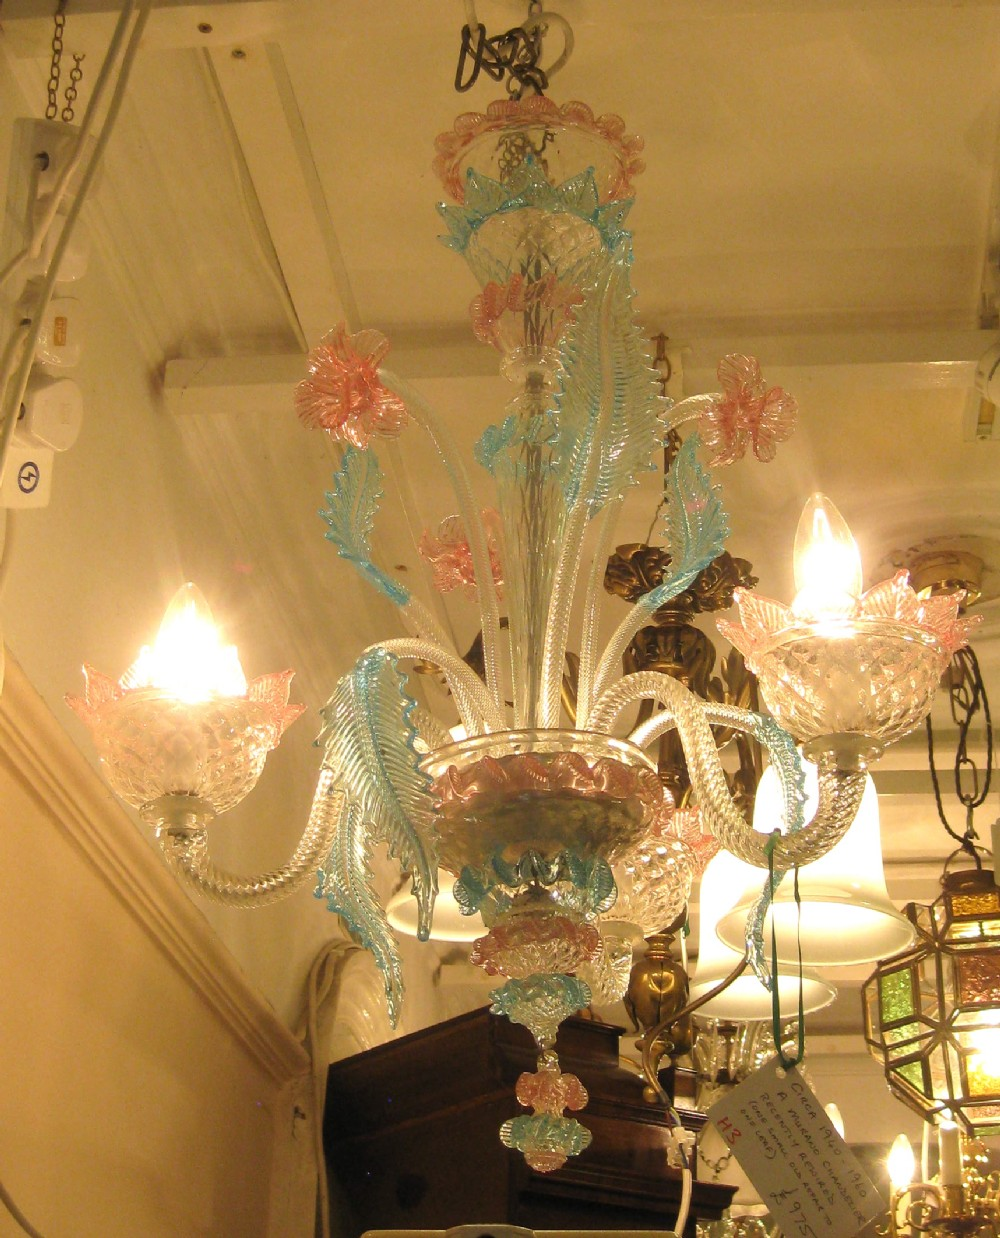 A murano glass chandelier 223643 sellingantiques a murano glass chandelier aloadofball Gallery